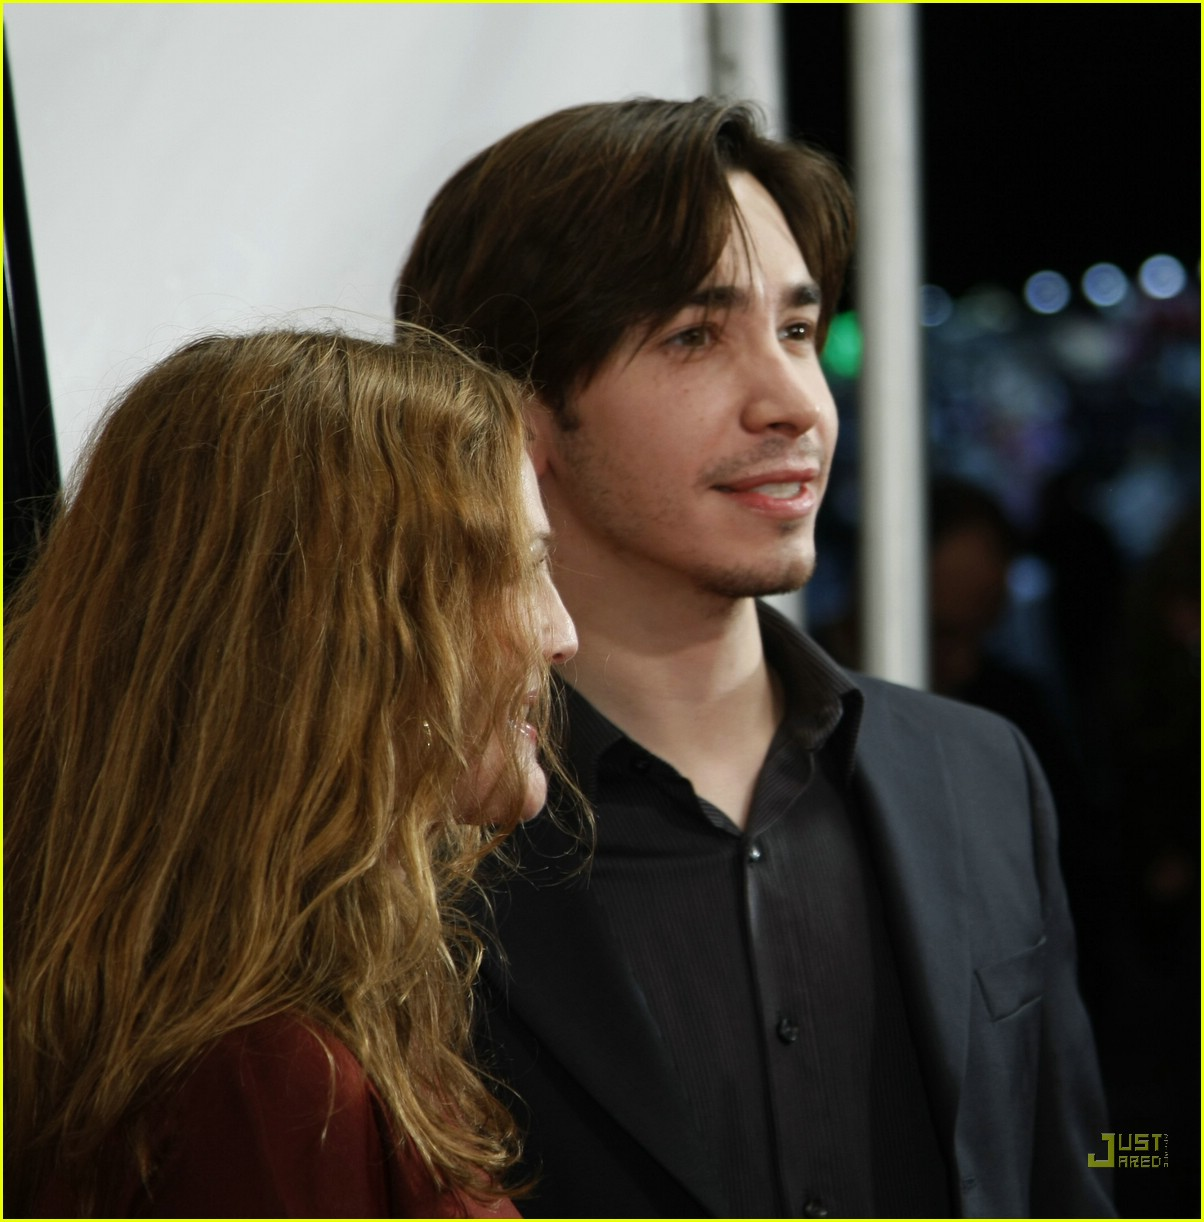 drew barrymore justin long red carpet love 16891921